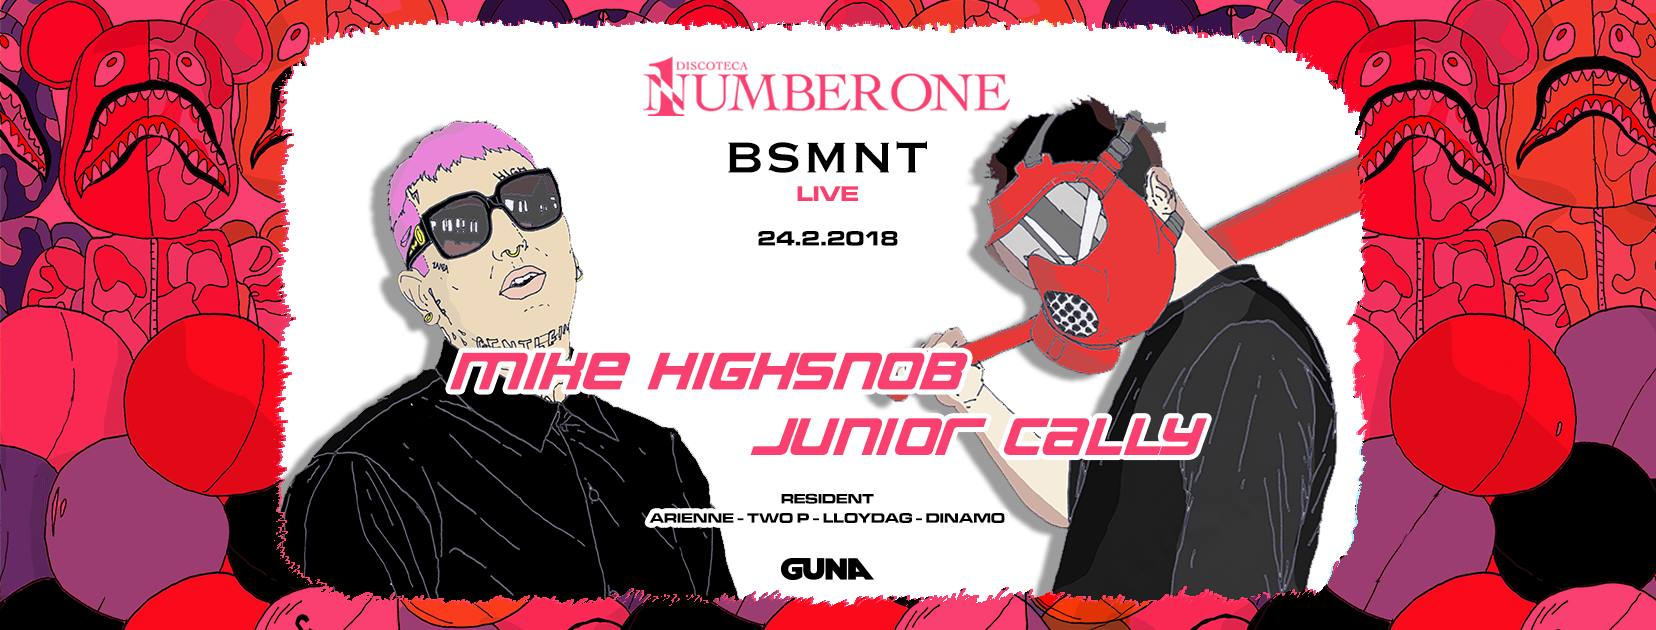 Basement & Number One: JuniorCally – MikeHighsnob